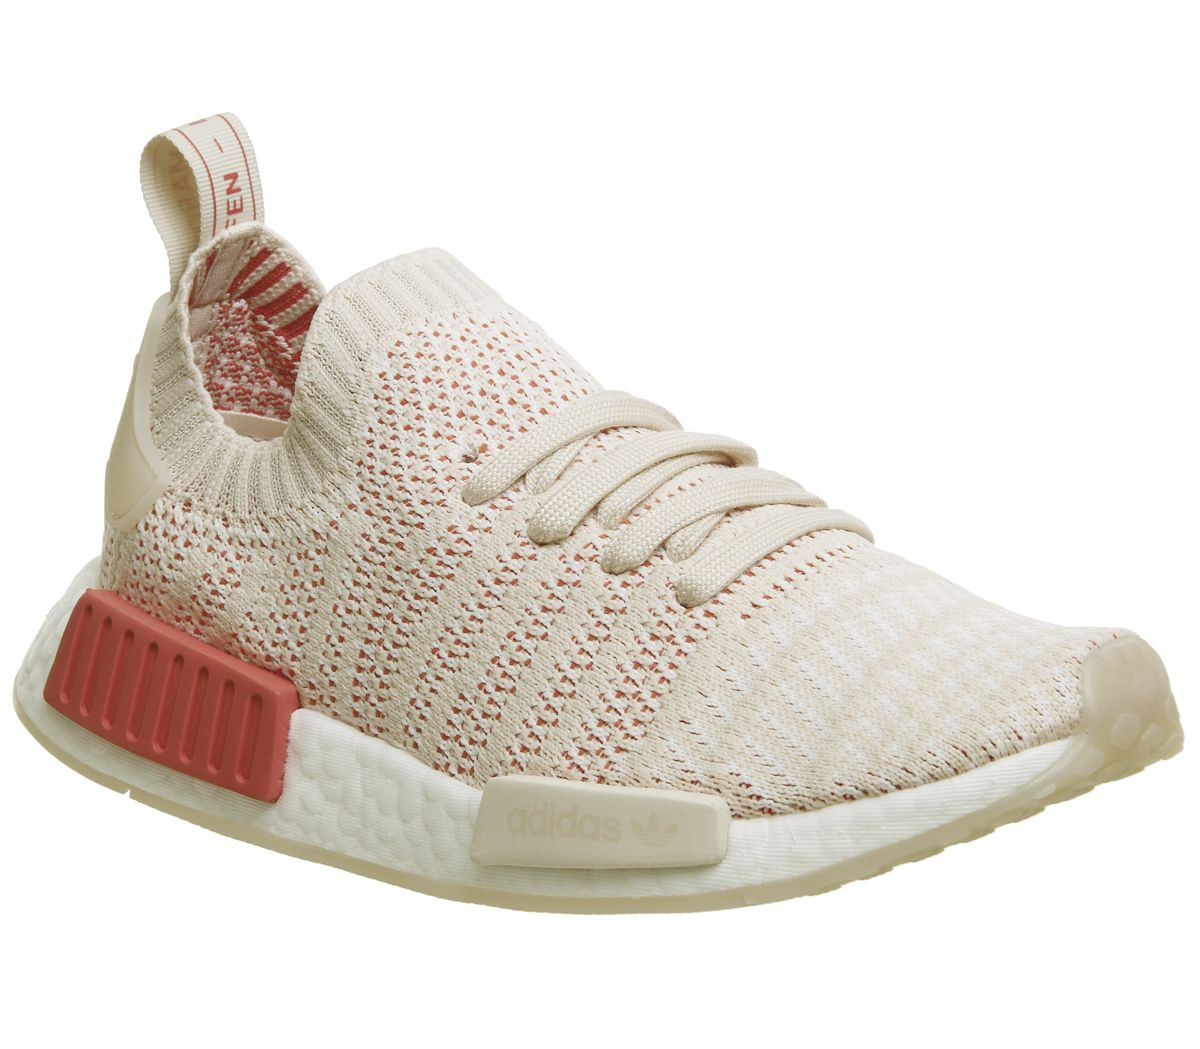 0ef7149bb adidas Nmd R1 Prime Knit Trainers Linen Crystal White - Hers trainers